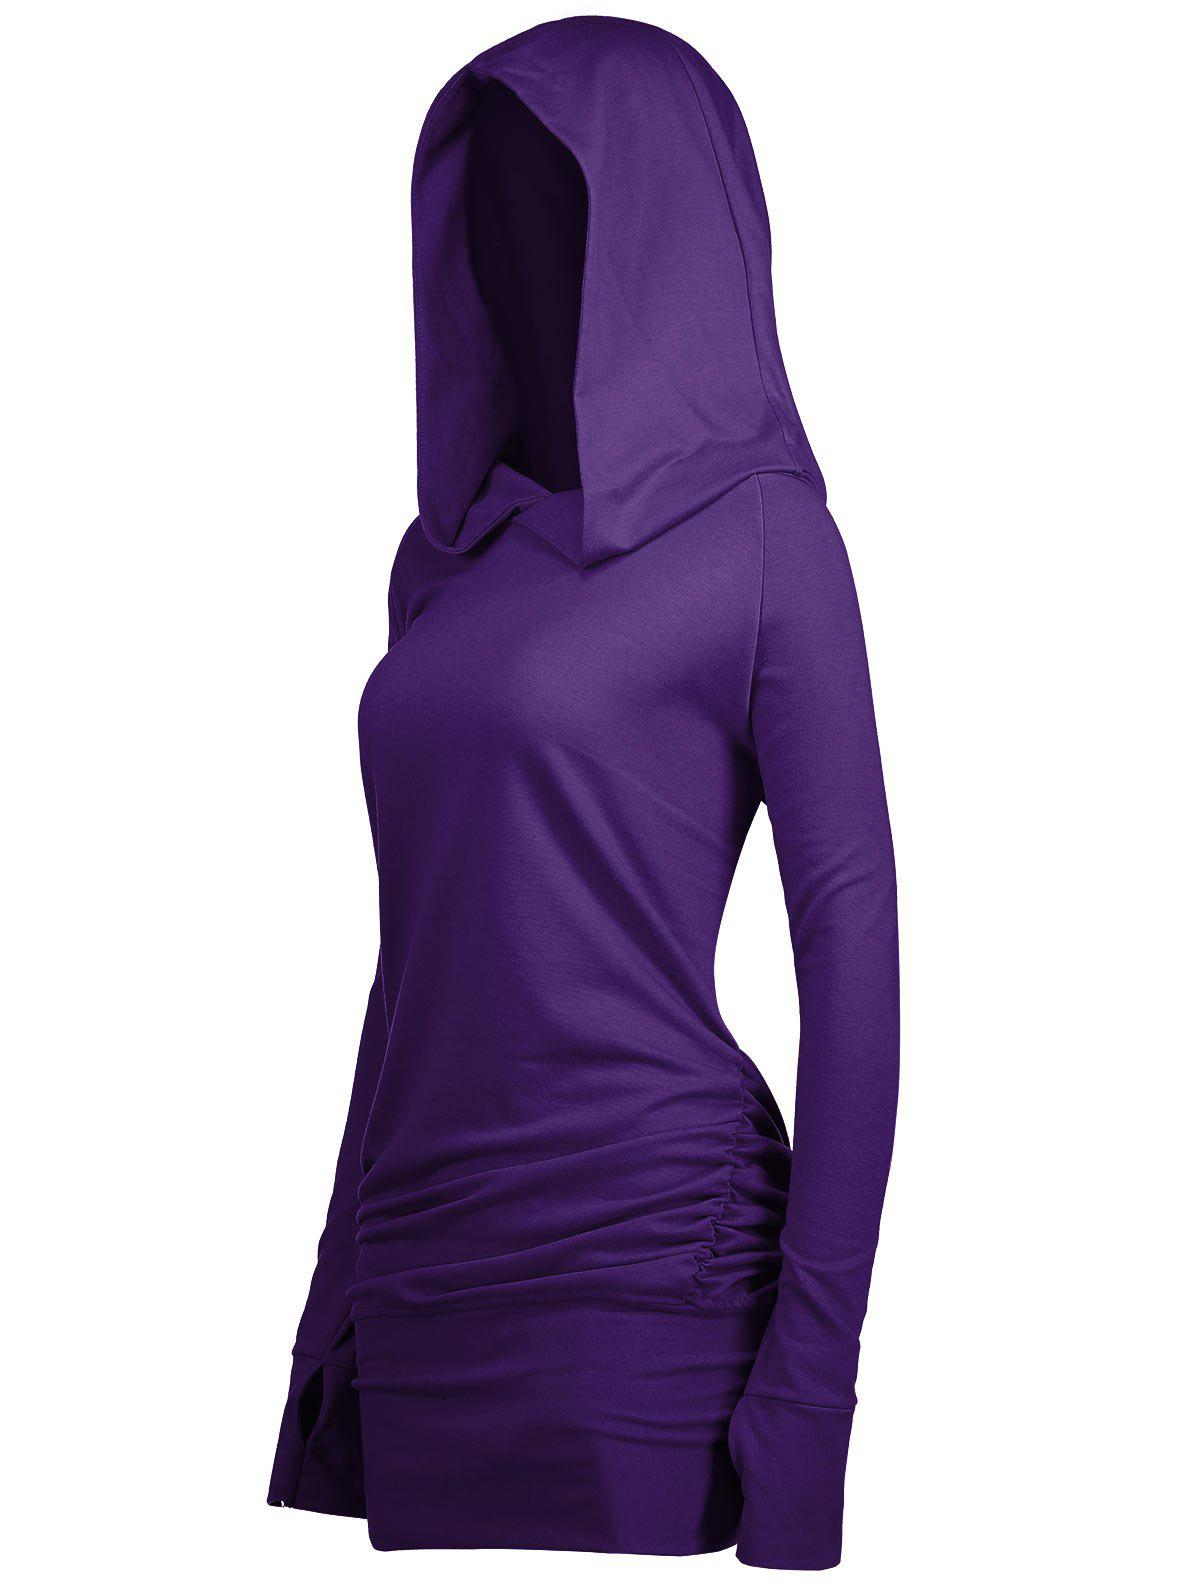 Long Plus Size Sides Ruched HoodieWOMEN<br><br>Size: XL; Color: PURPLE; Material: Polyester,Spandex; Shirt Length: Long; Sleeve Length: Full; Style: Fashion; Pattern Style: Solid; Season: Fall,Spring; Weight: 0.4200kg; Package Contents: 1 x Hoodie;